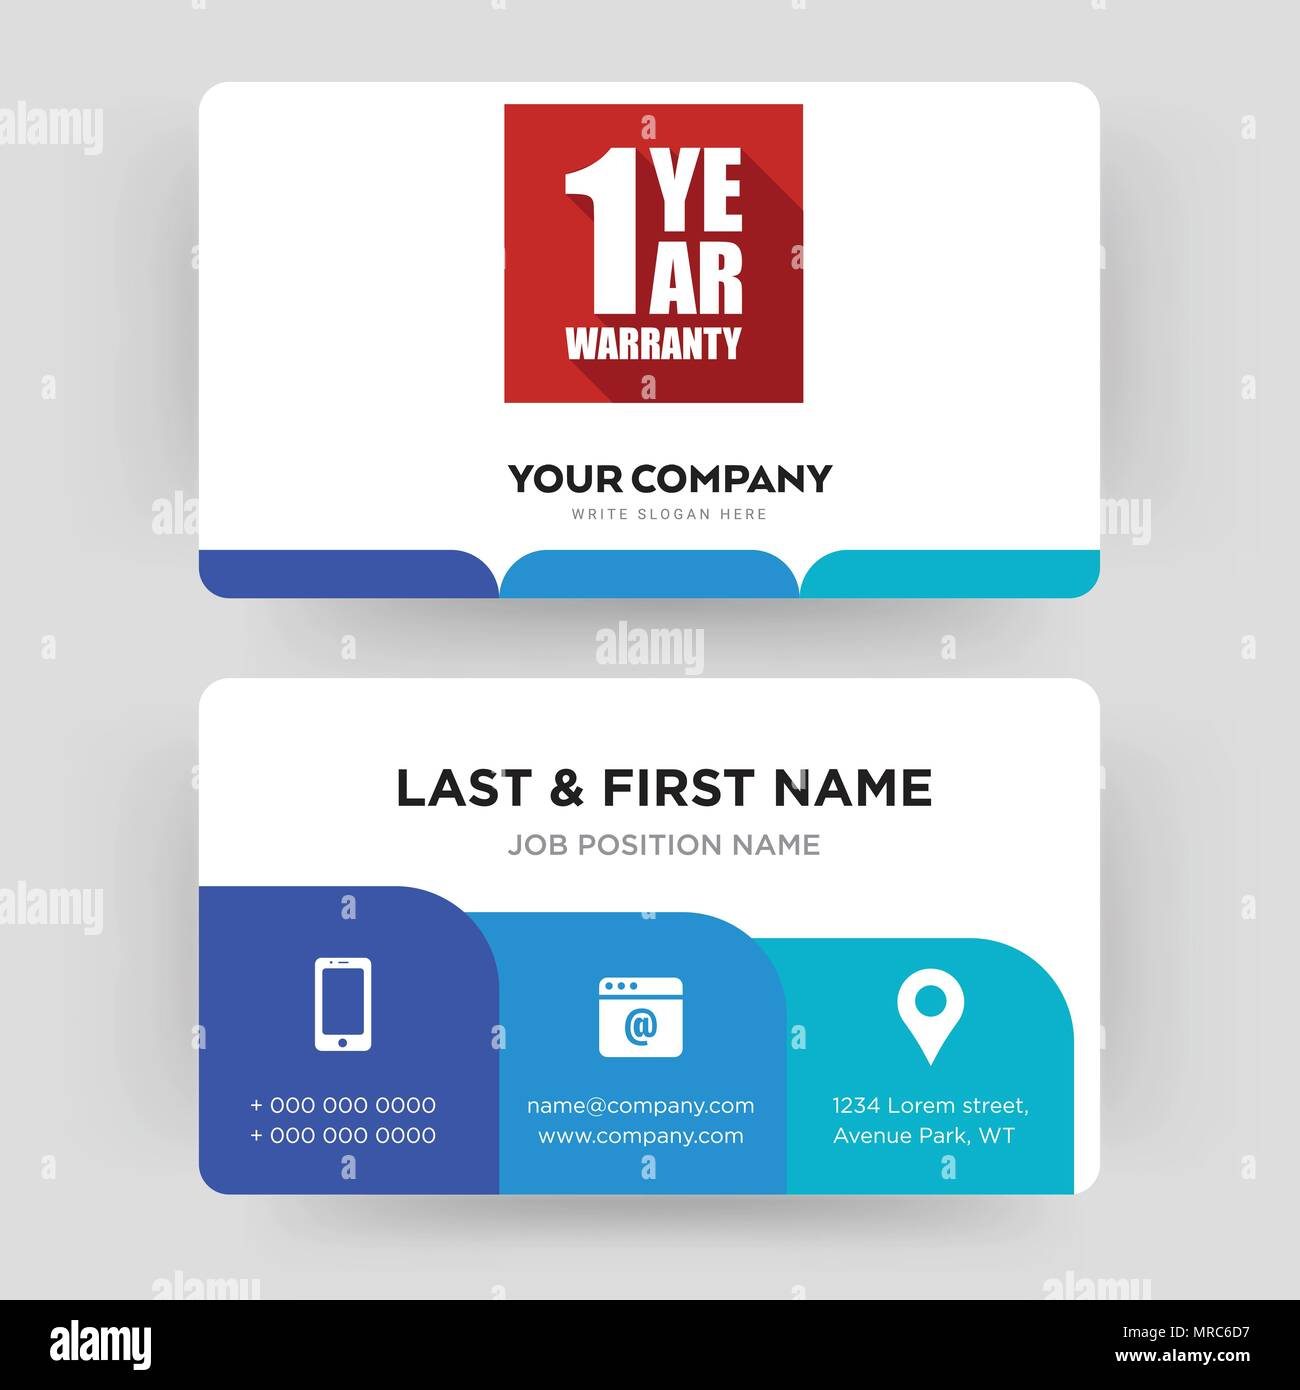 1 year warranty business card design template visiting for your